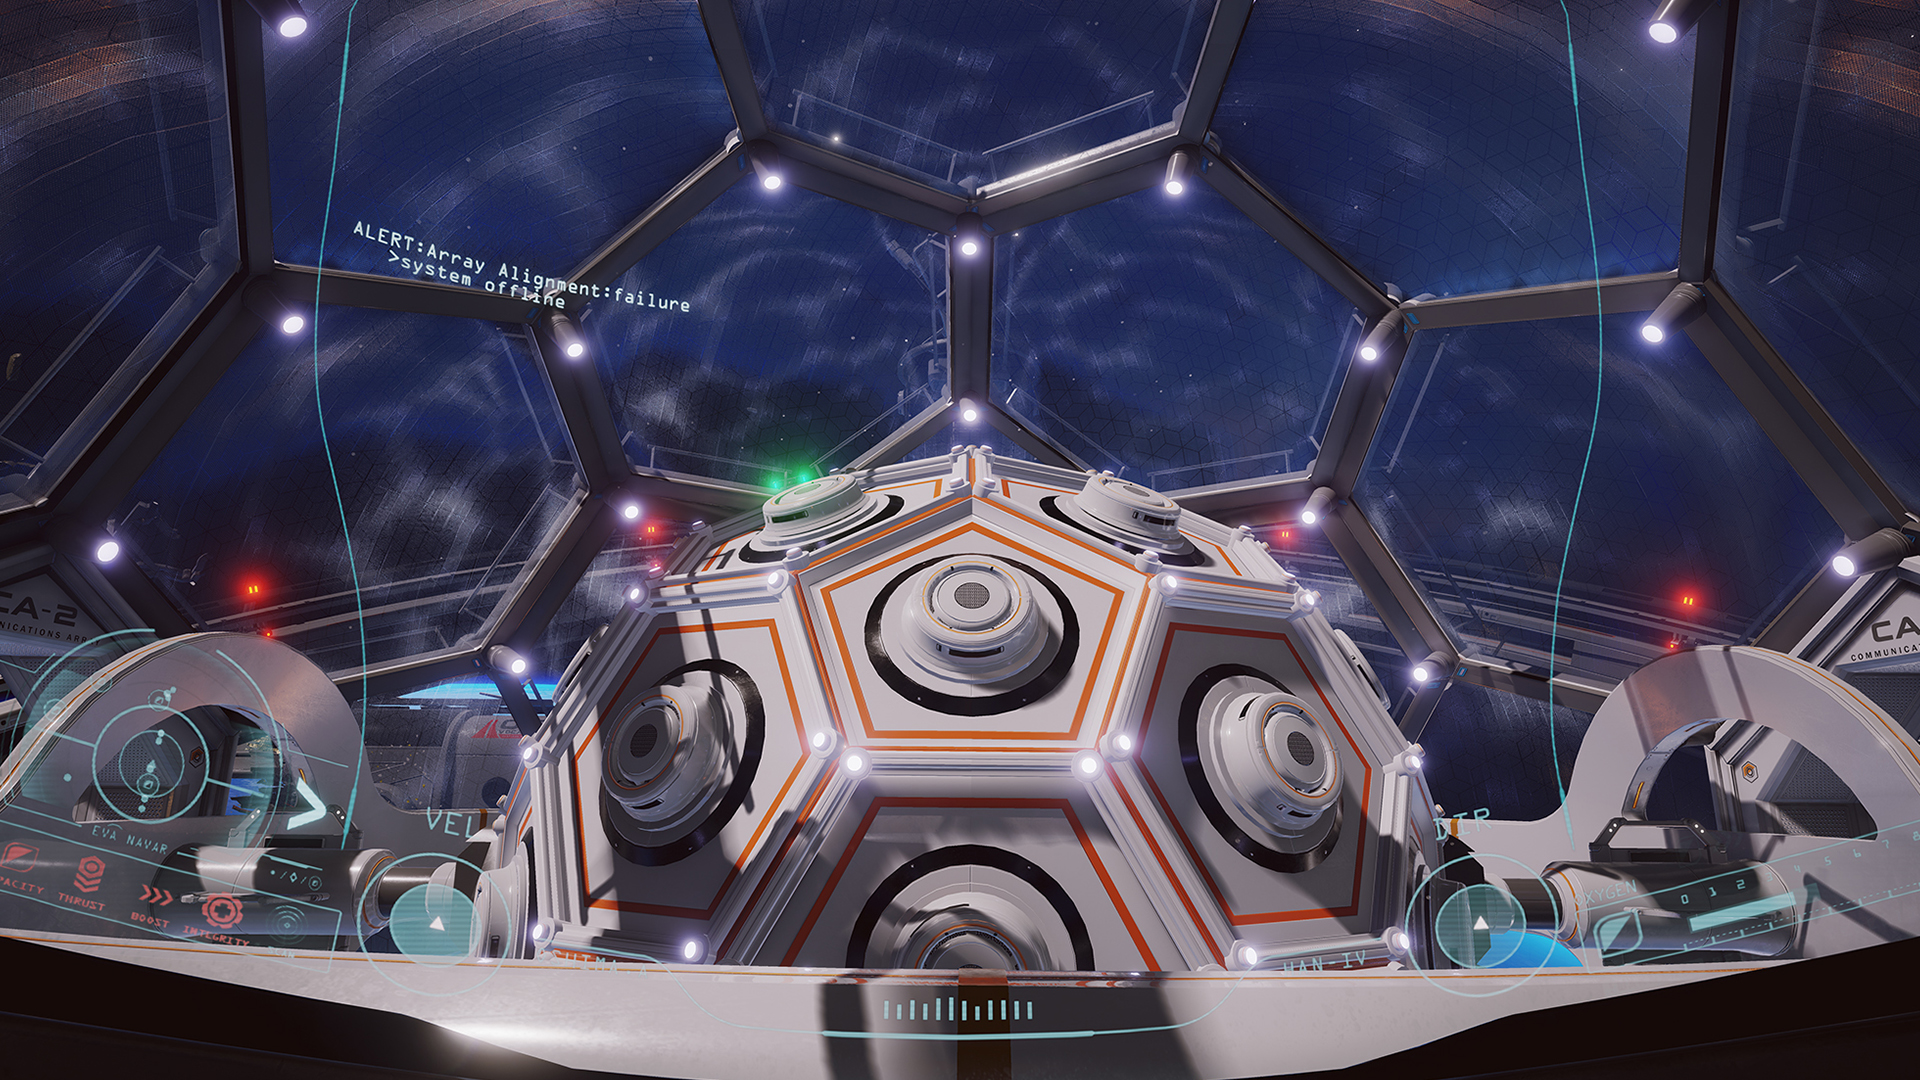 download adr1ft cracked by steampunks include all dlc and latest update copiapop diskokosmiko